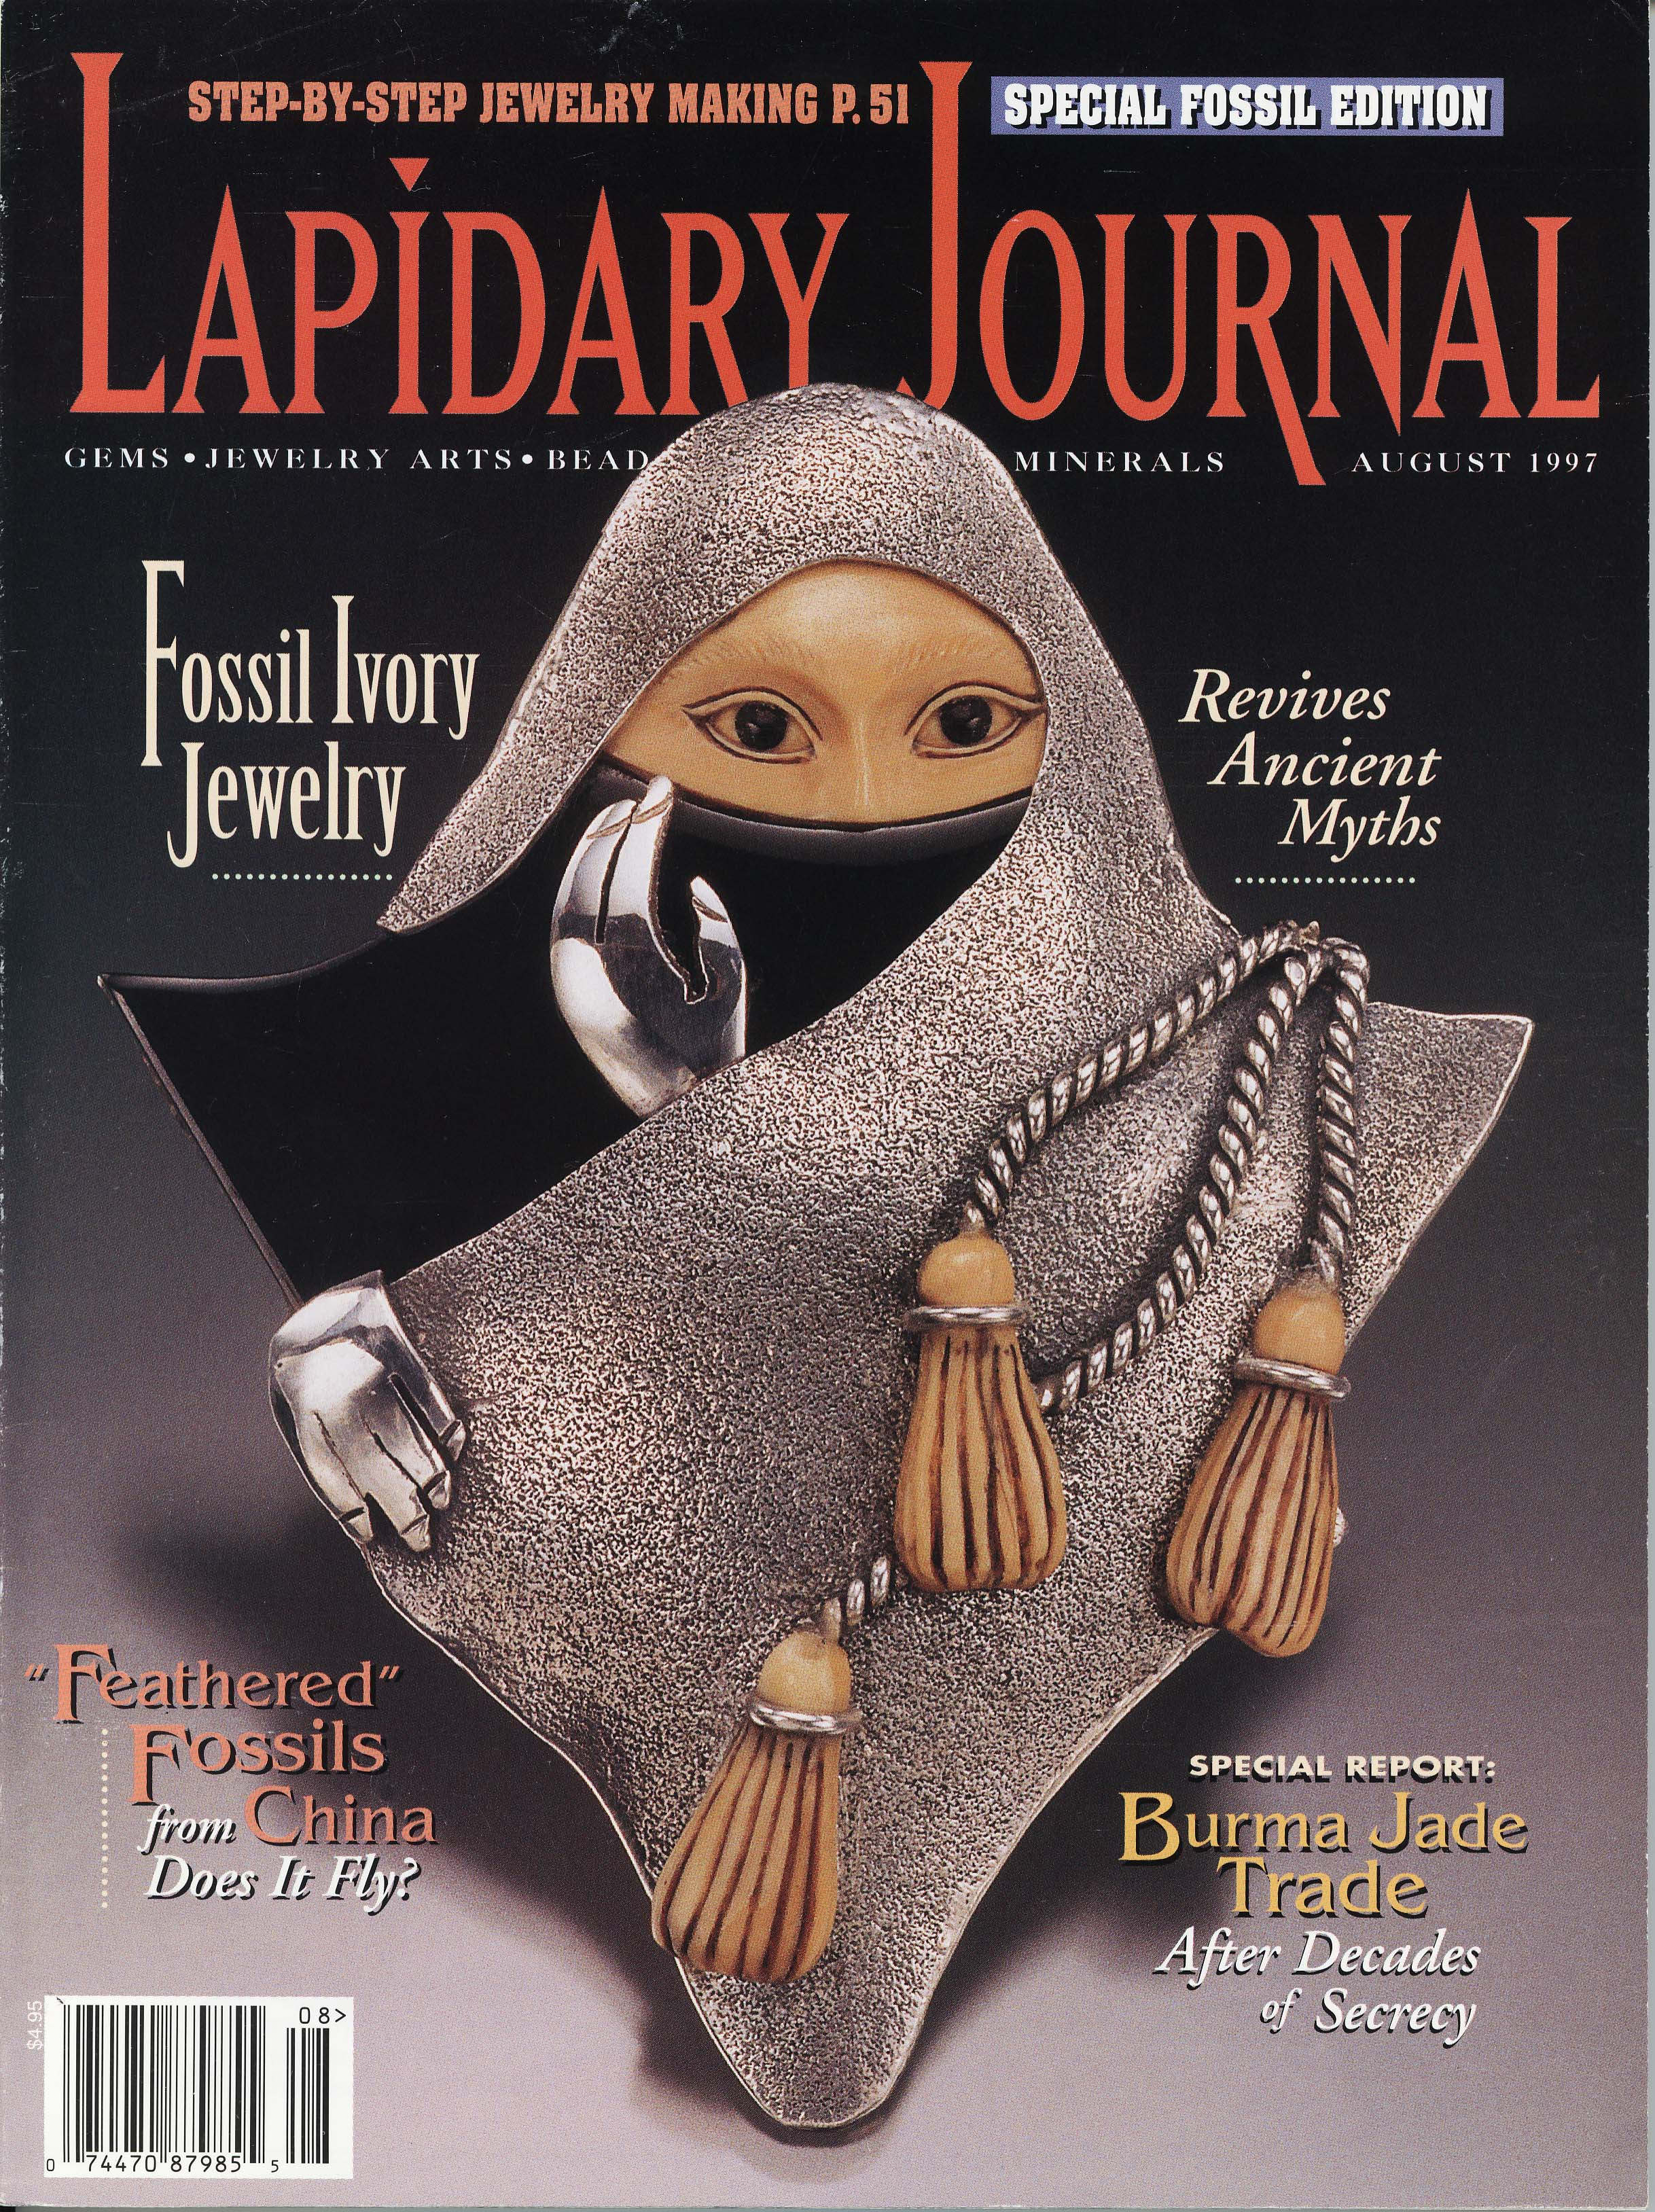 Zealandia-jewelry-lapidary-article-fossilized ivory jewelry